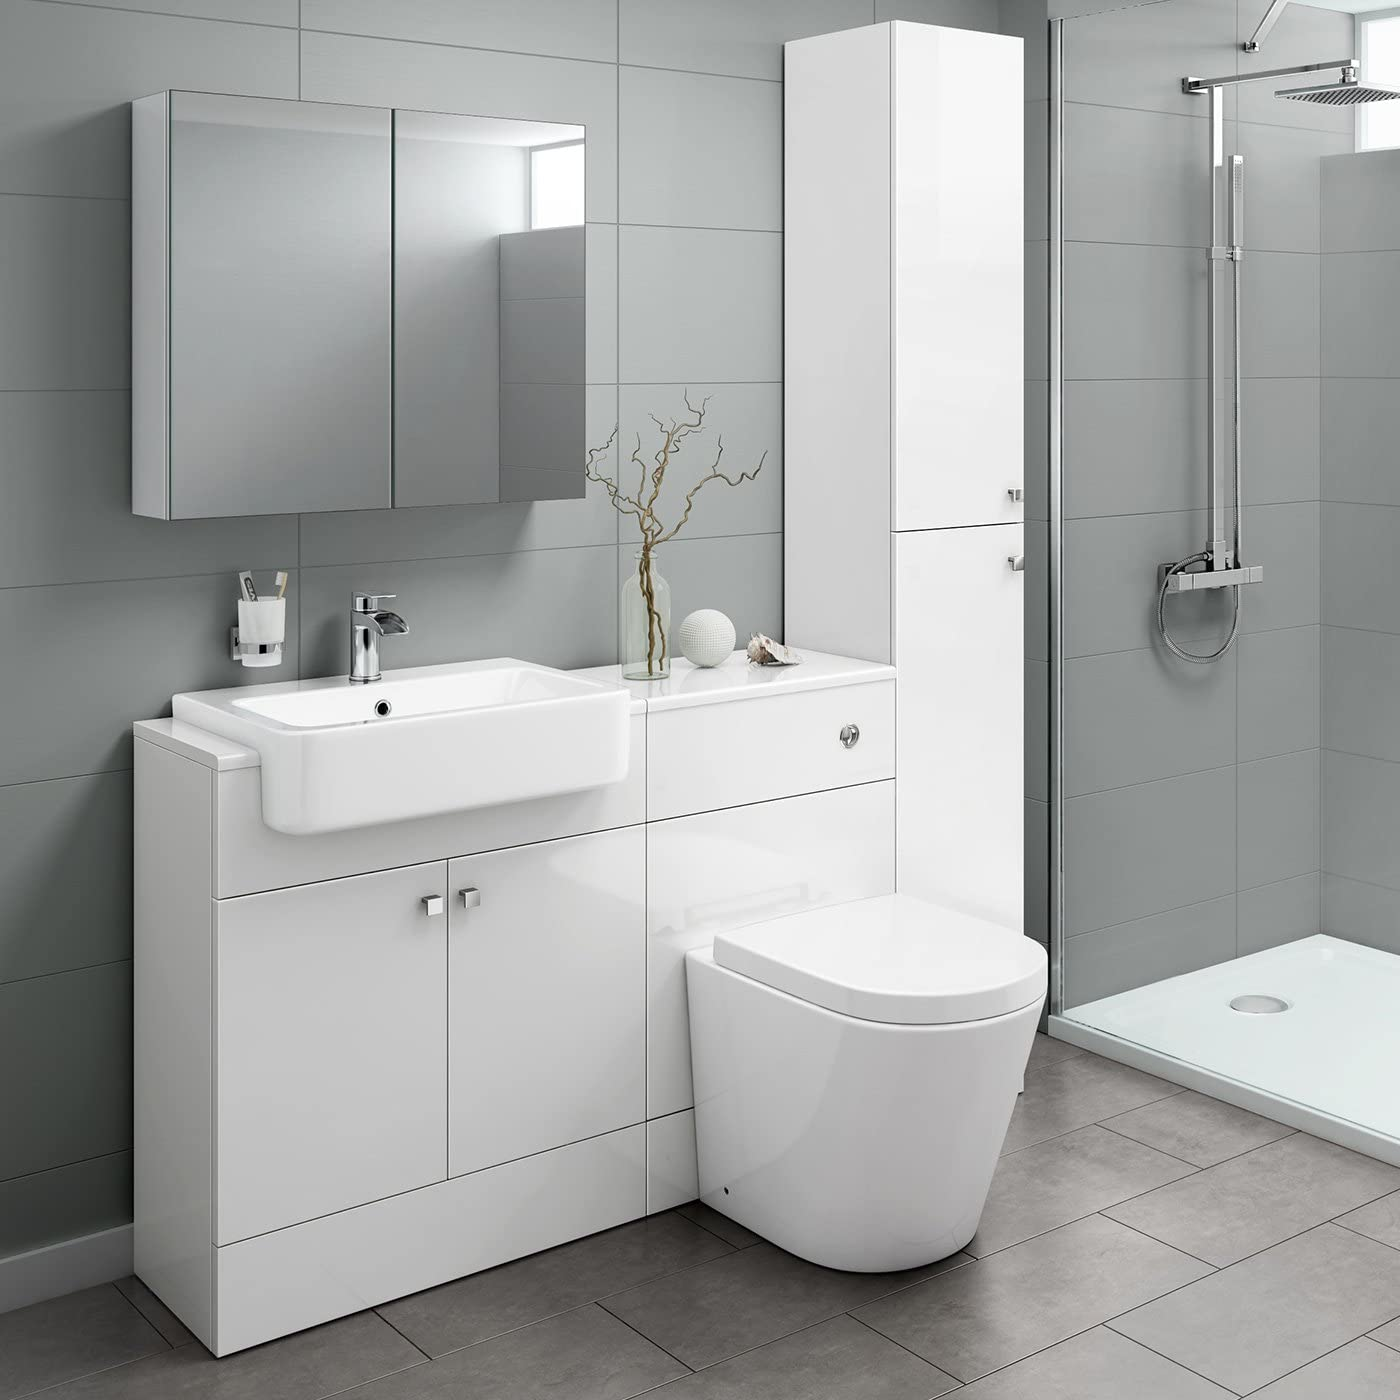 Combined Furniture Suite Vanity Unit Cabinet Toilet Basin Sink